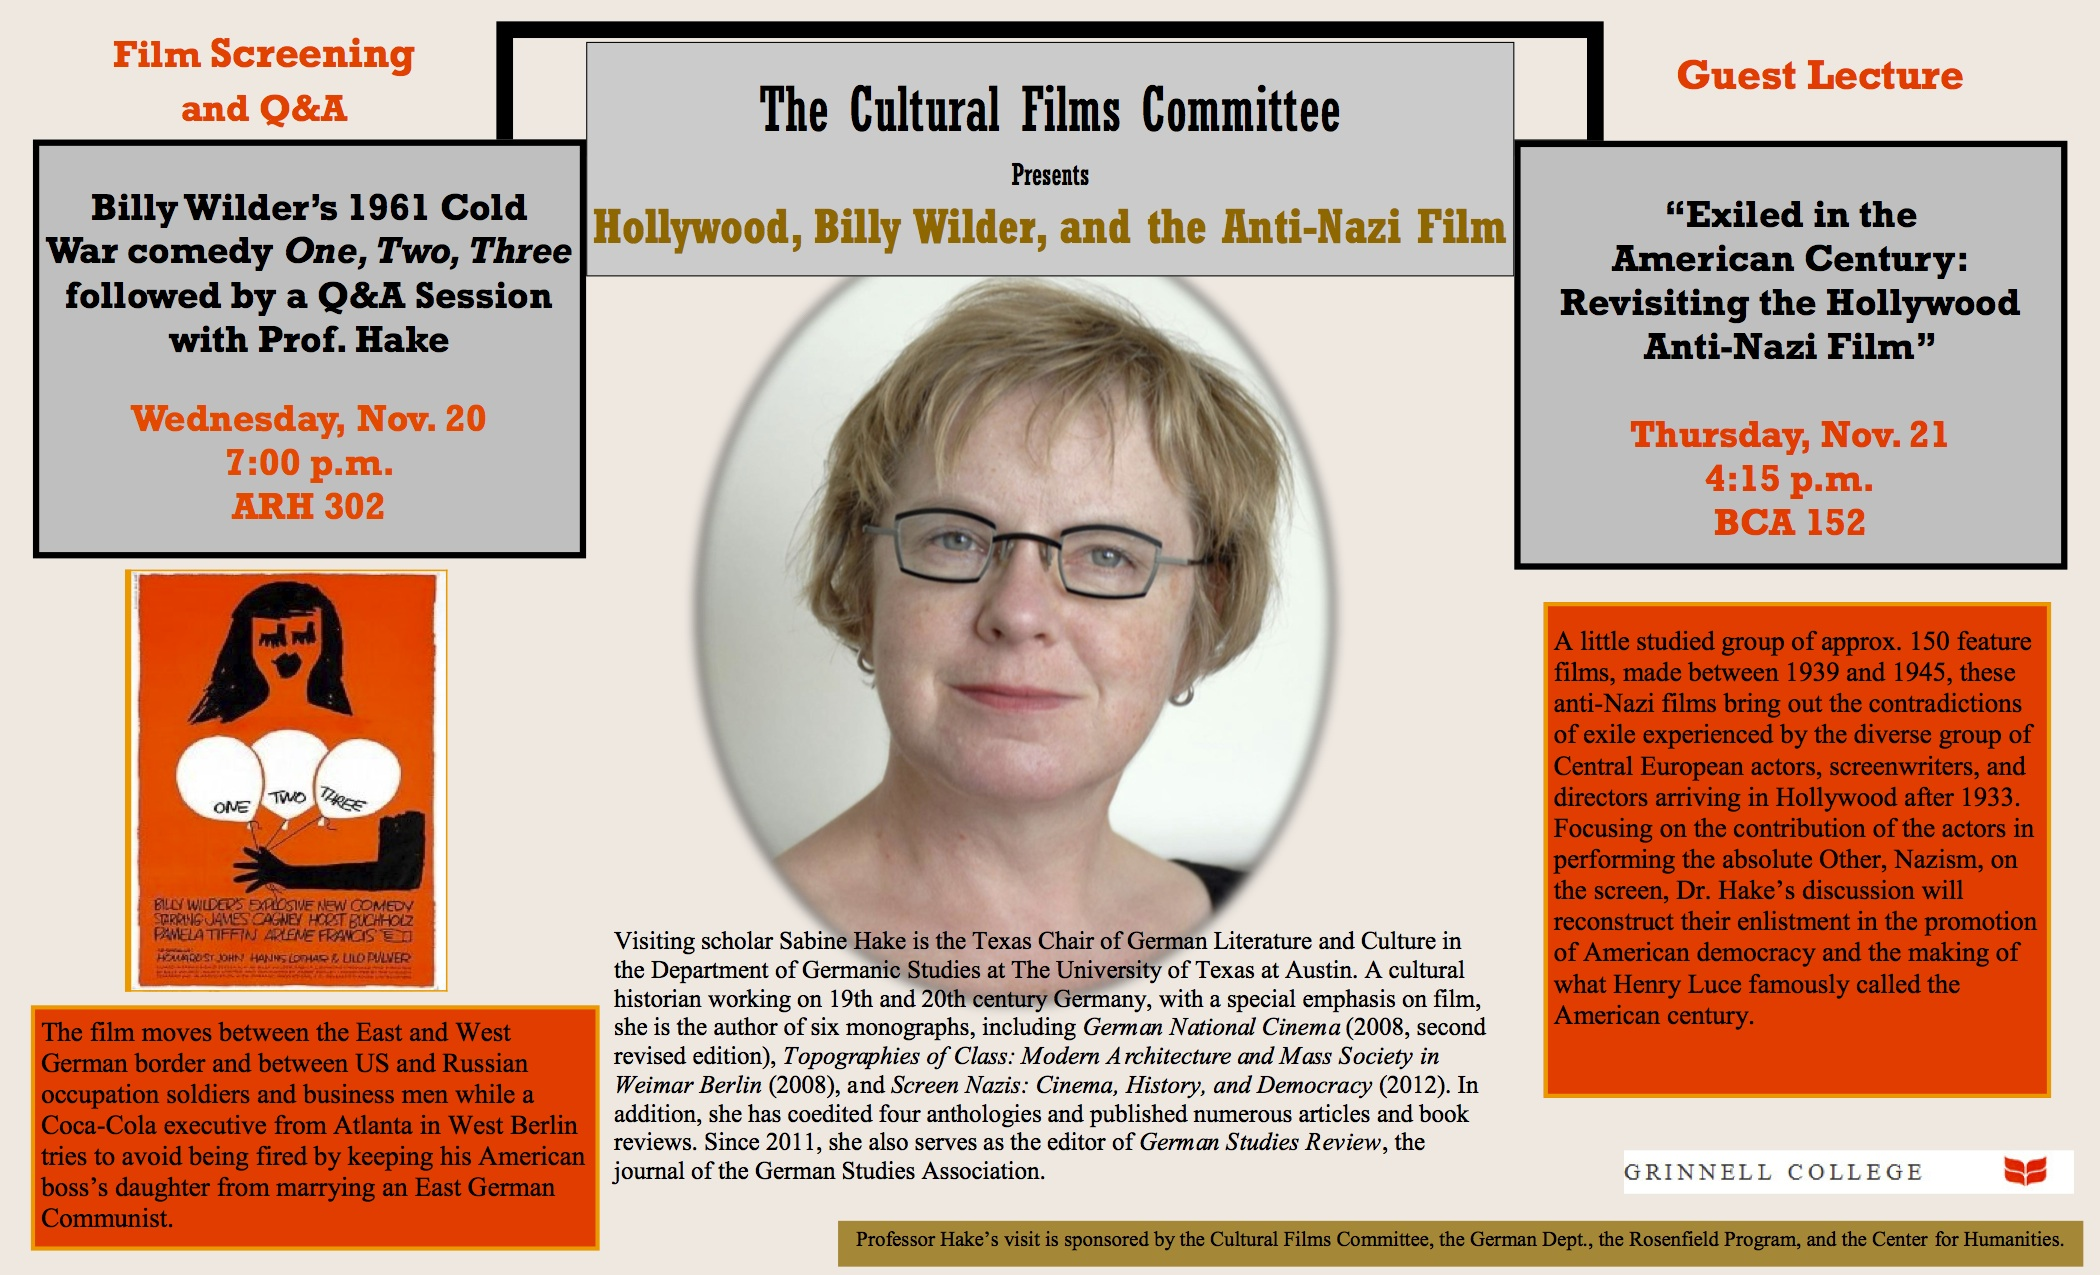 The Cultural Films Committee presents Hollywood, Billy Wilder, and the Anti-Nazi Film